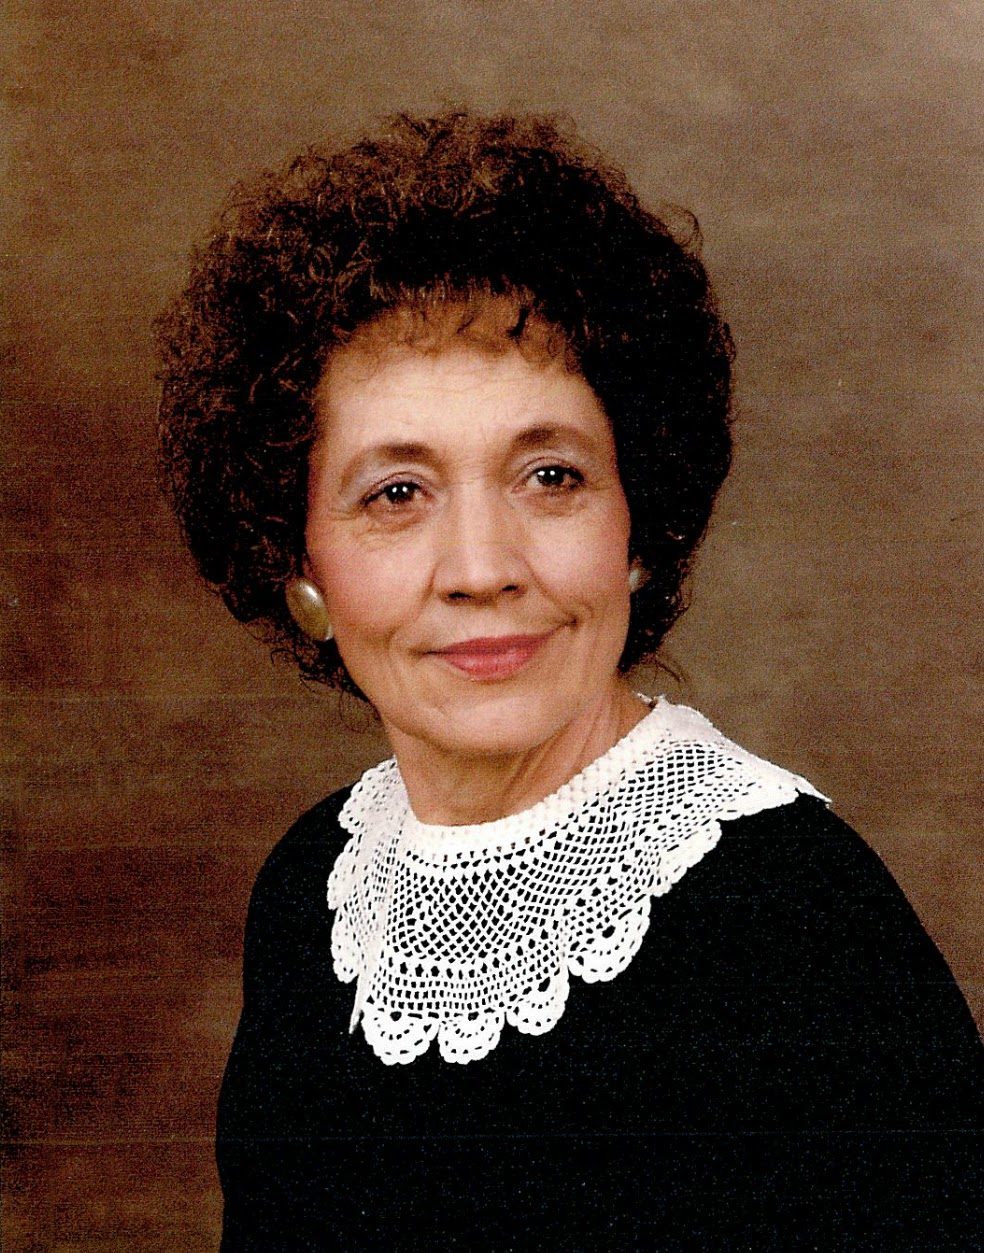 LaDonna Jacobson Merkley